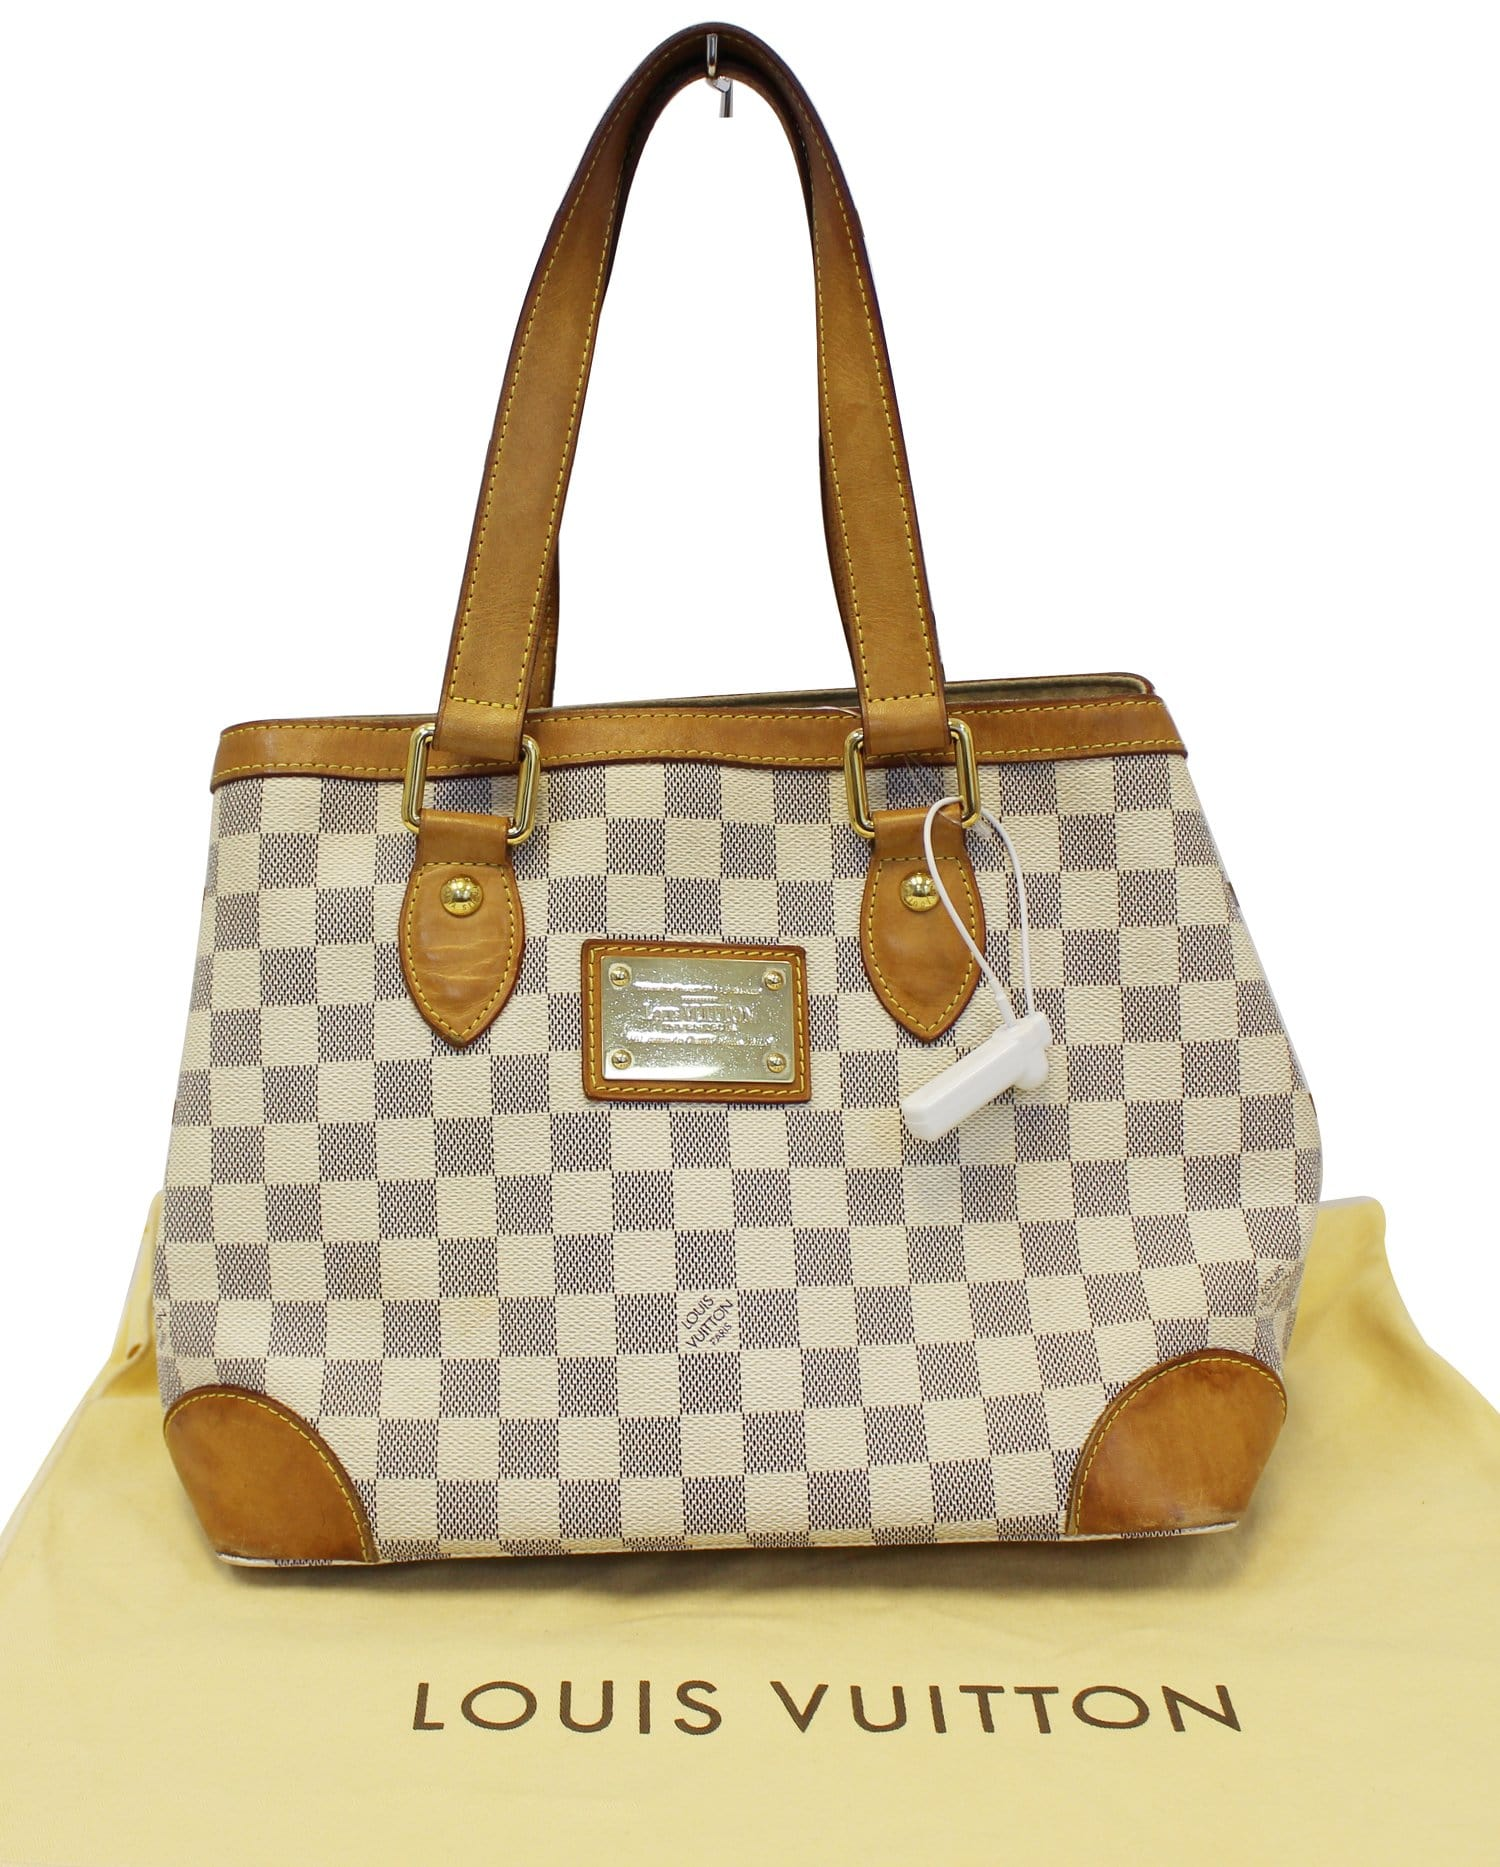 8a01f96fff4e LOUIS VUITTON Damier Azur Hampstead PM Shoulder Bag